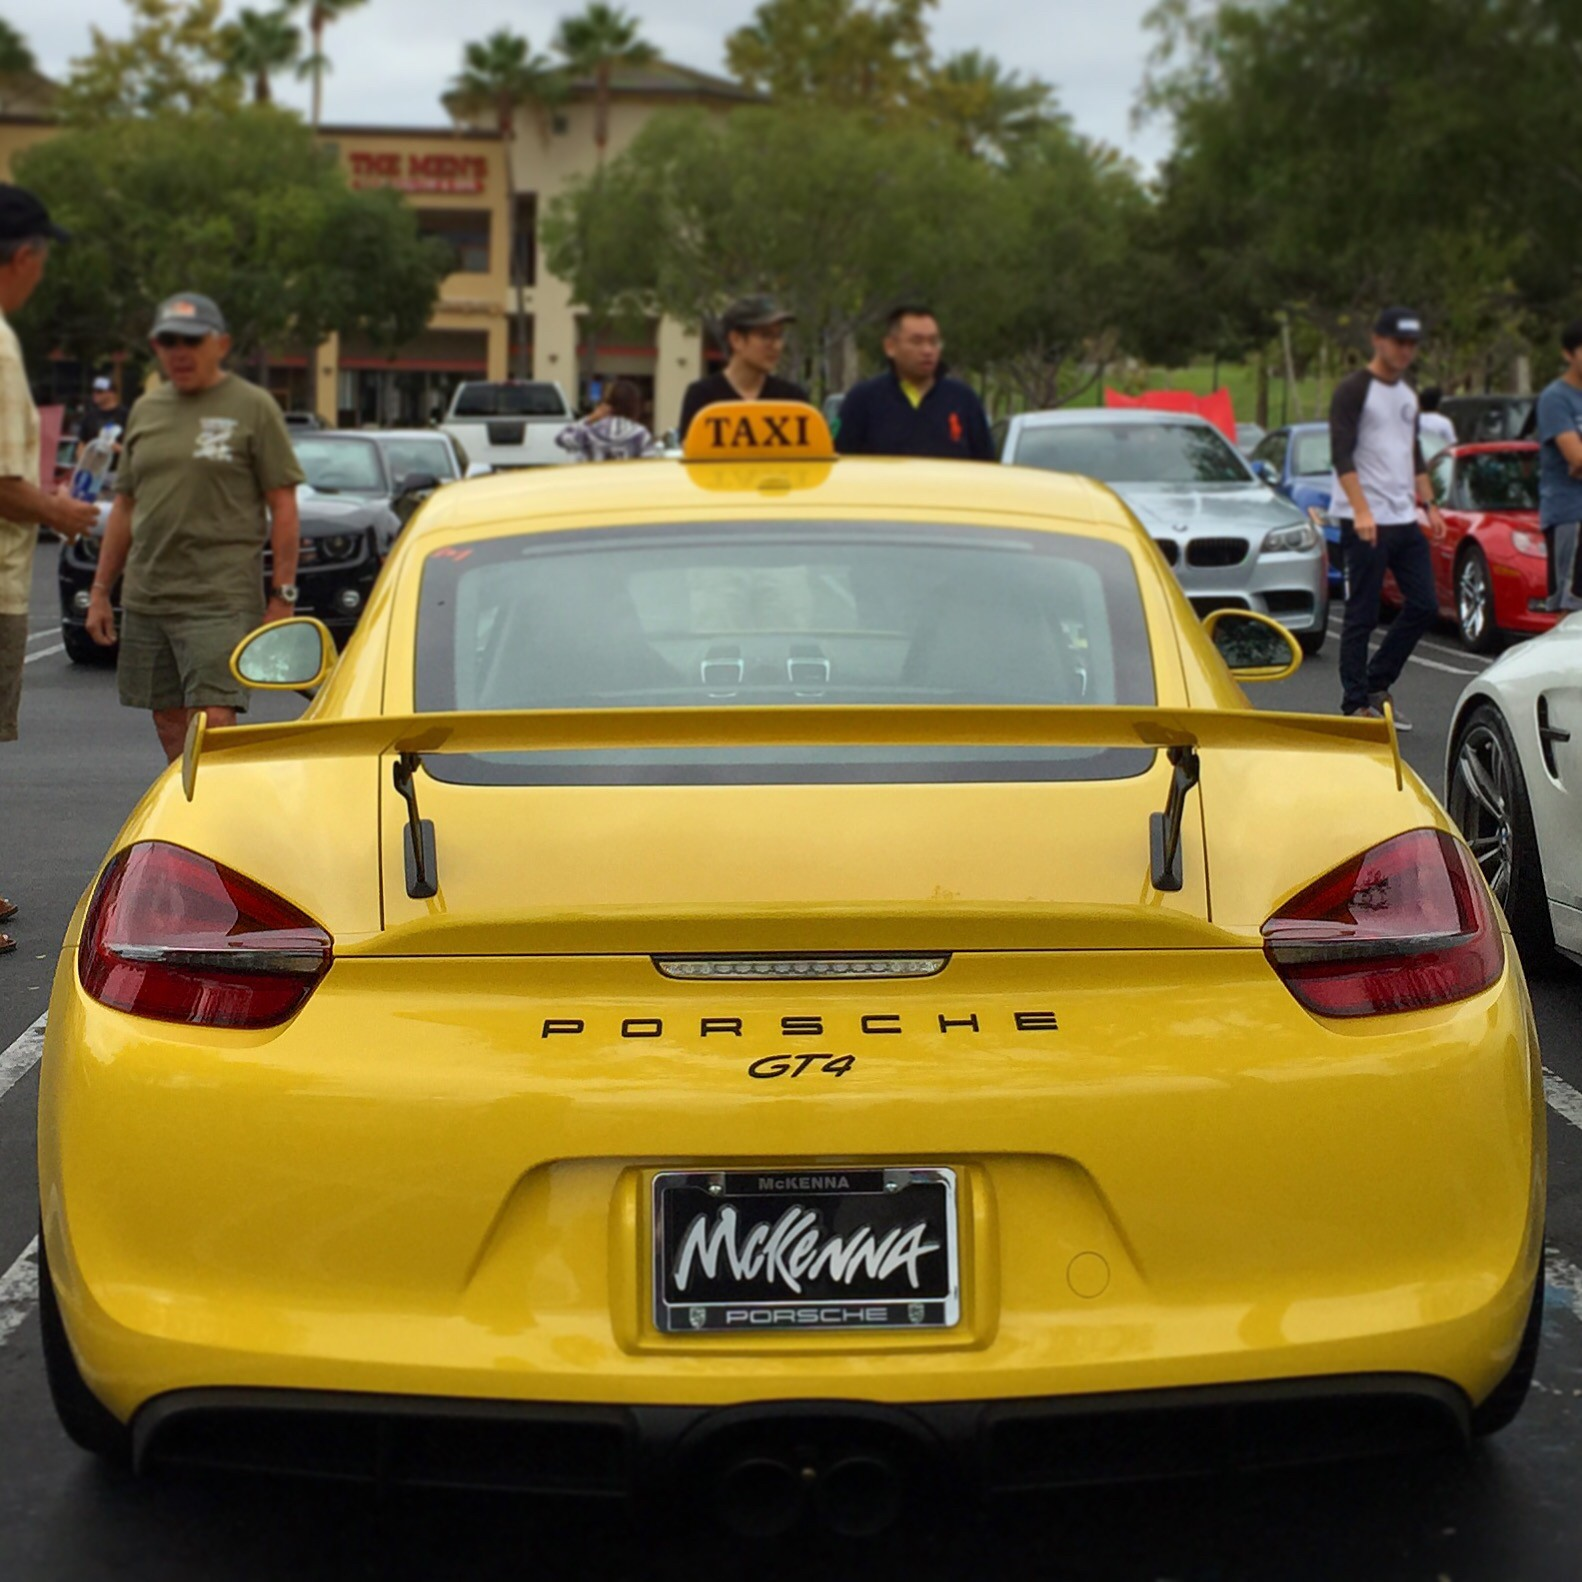 Porsche Gt4 Turbo >> Porsche Cayman GT4 Taxi Shows Up at Cars & Coffee in ...